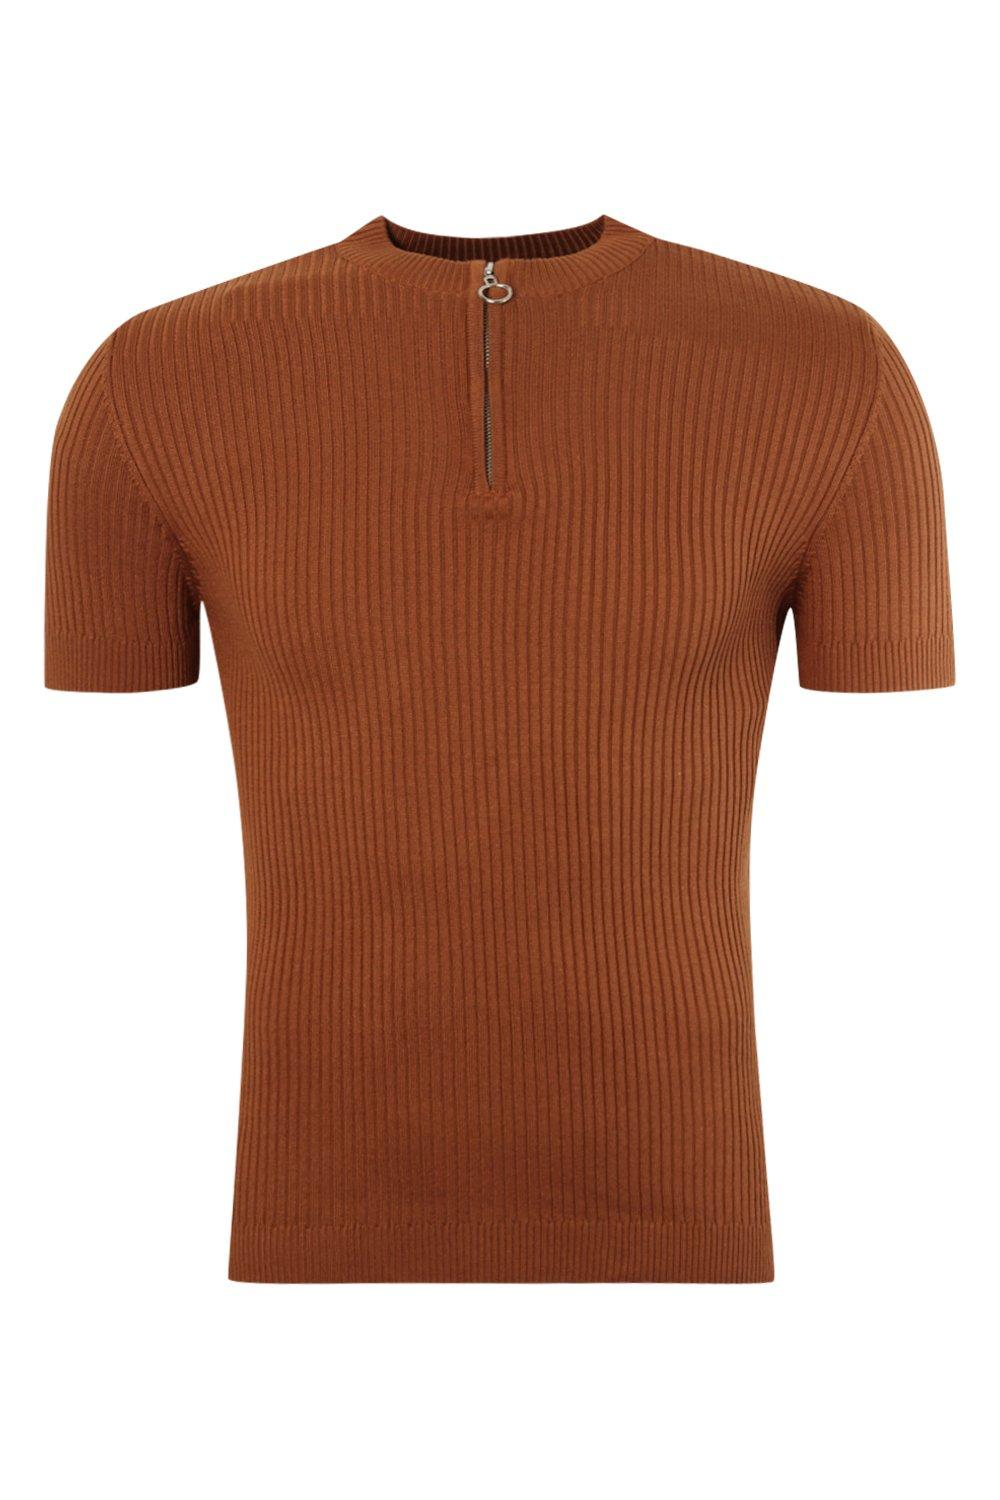 boohooMAN tobacco Short Sleeve Rib Knitted Turtle Neck